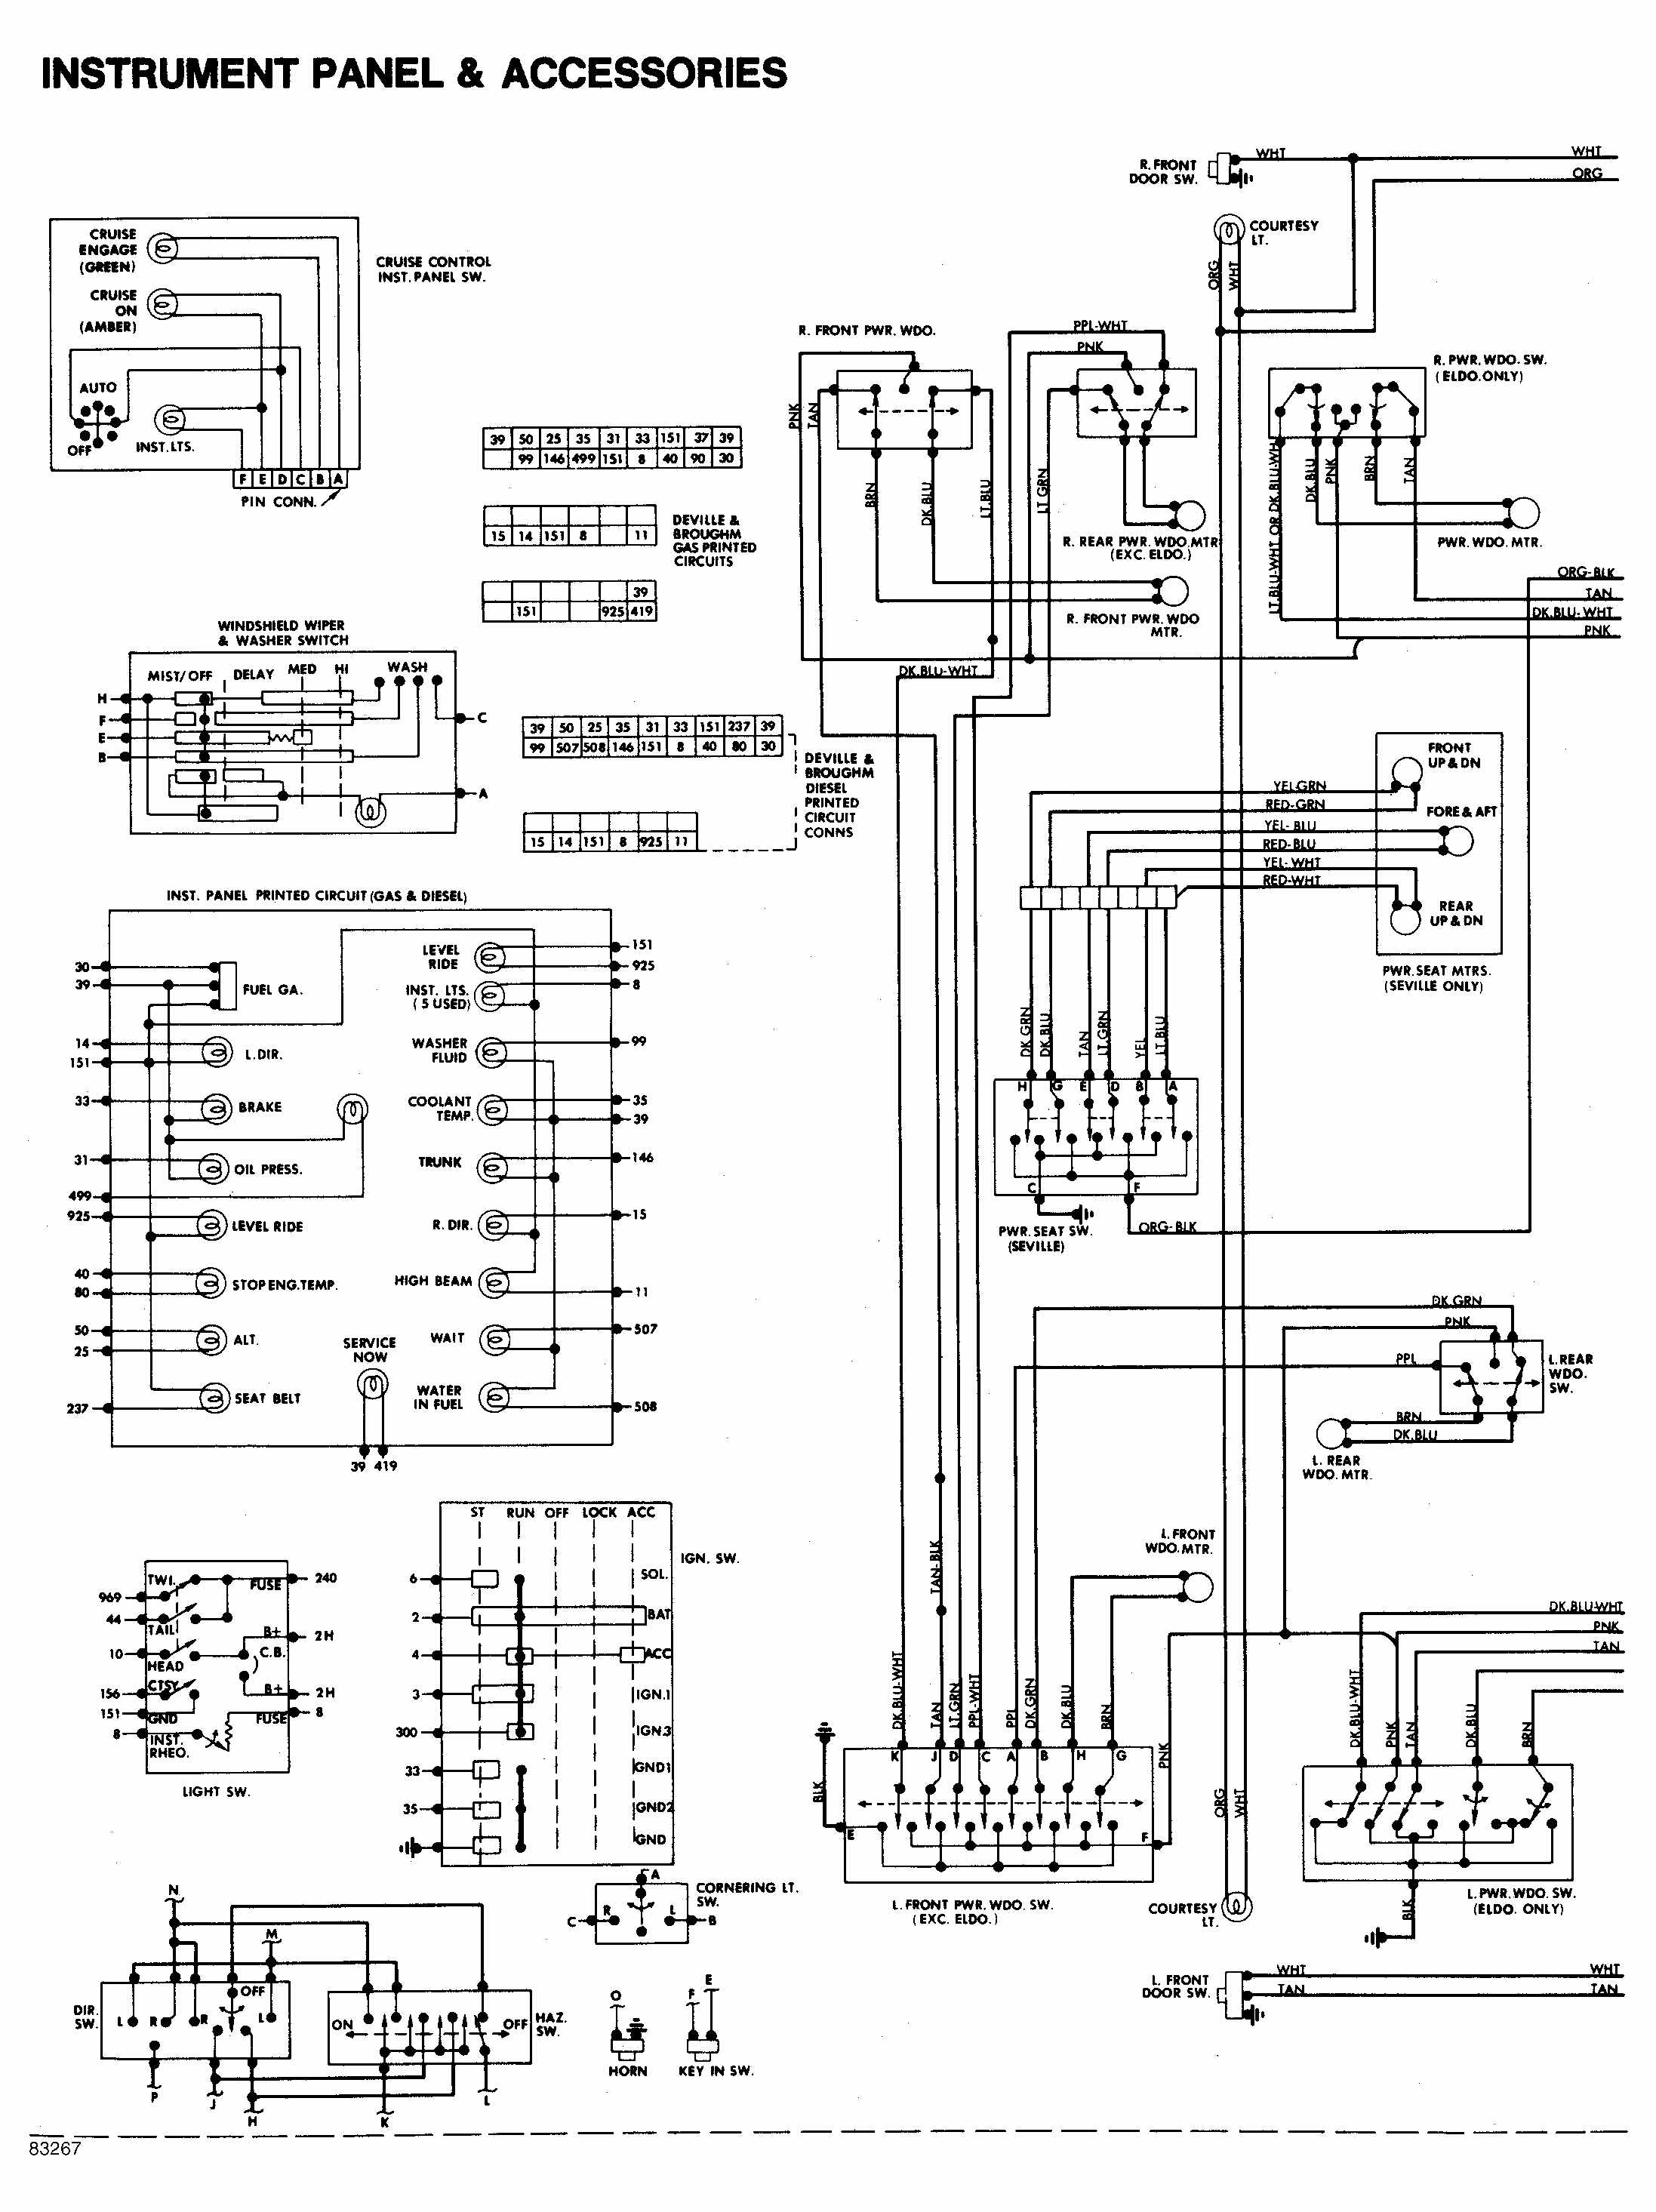 Wiring Schematic For A Cadillac Escalade